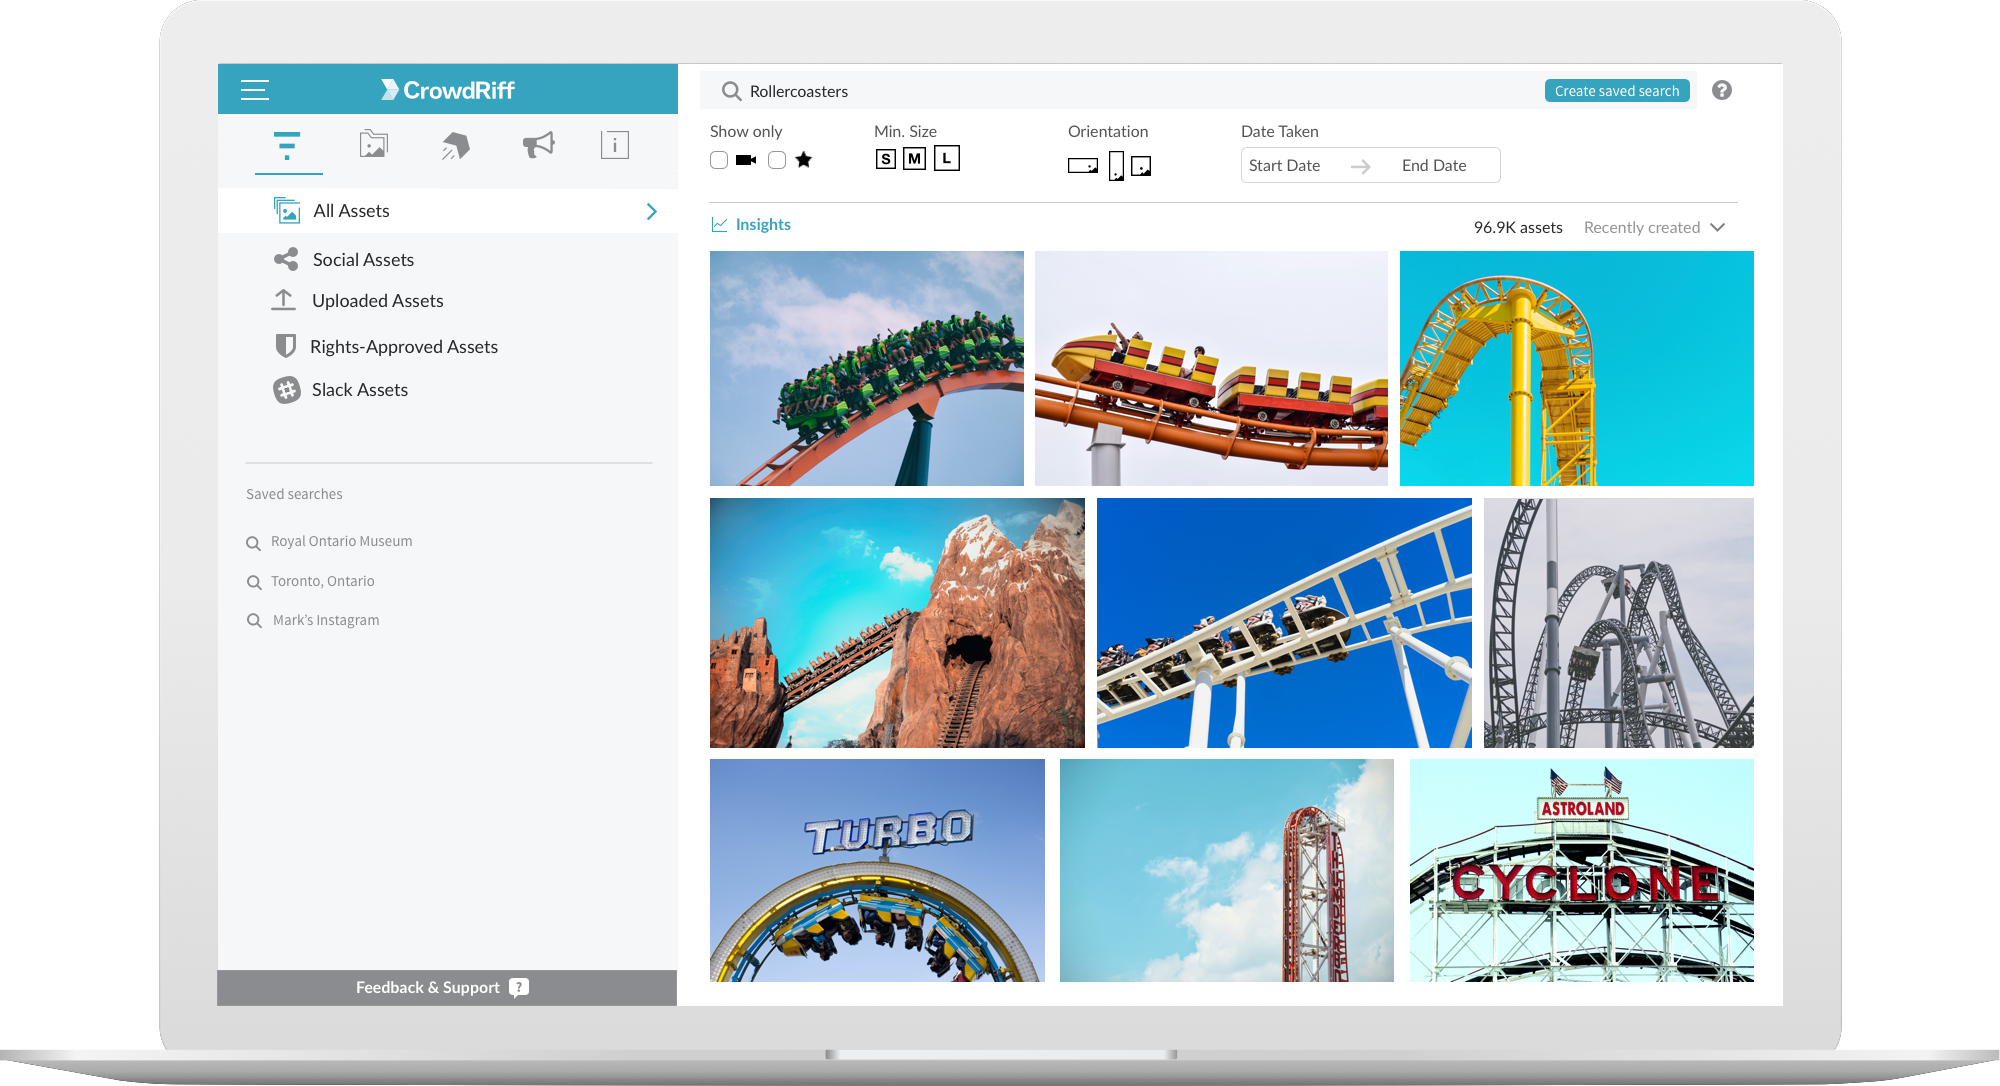 CrowdRiff platform showing image results of Rollercoaster search